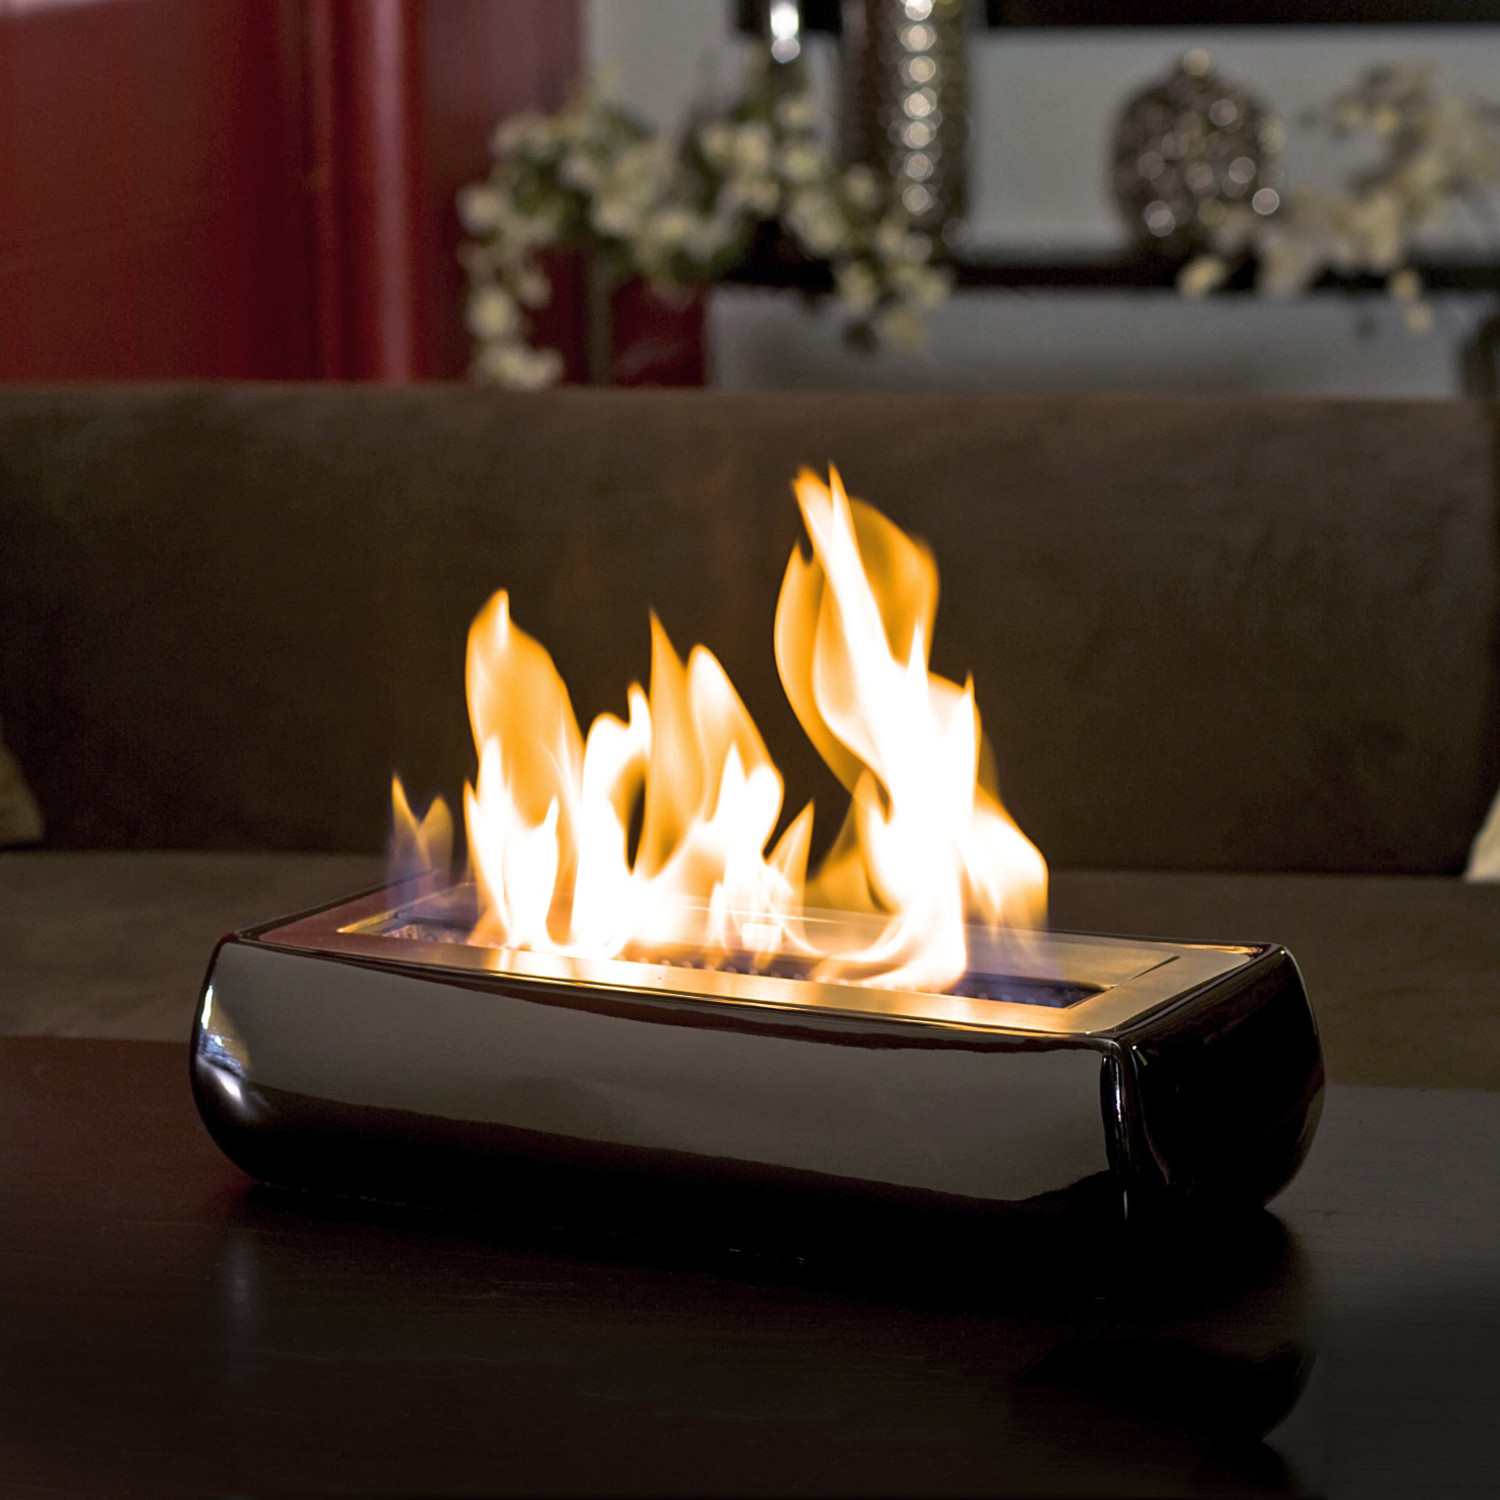 The Avani Portable Fireplace is made with a ceramic shell and stainless steel burner and is very compact. Its versatility makes it a great accessory for a smaller hom...